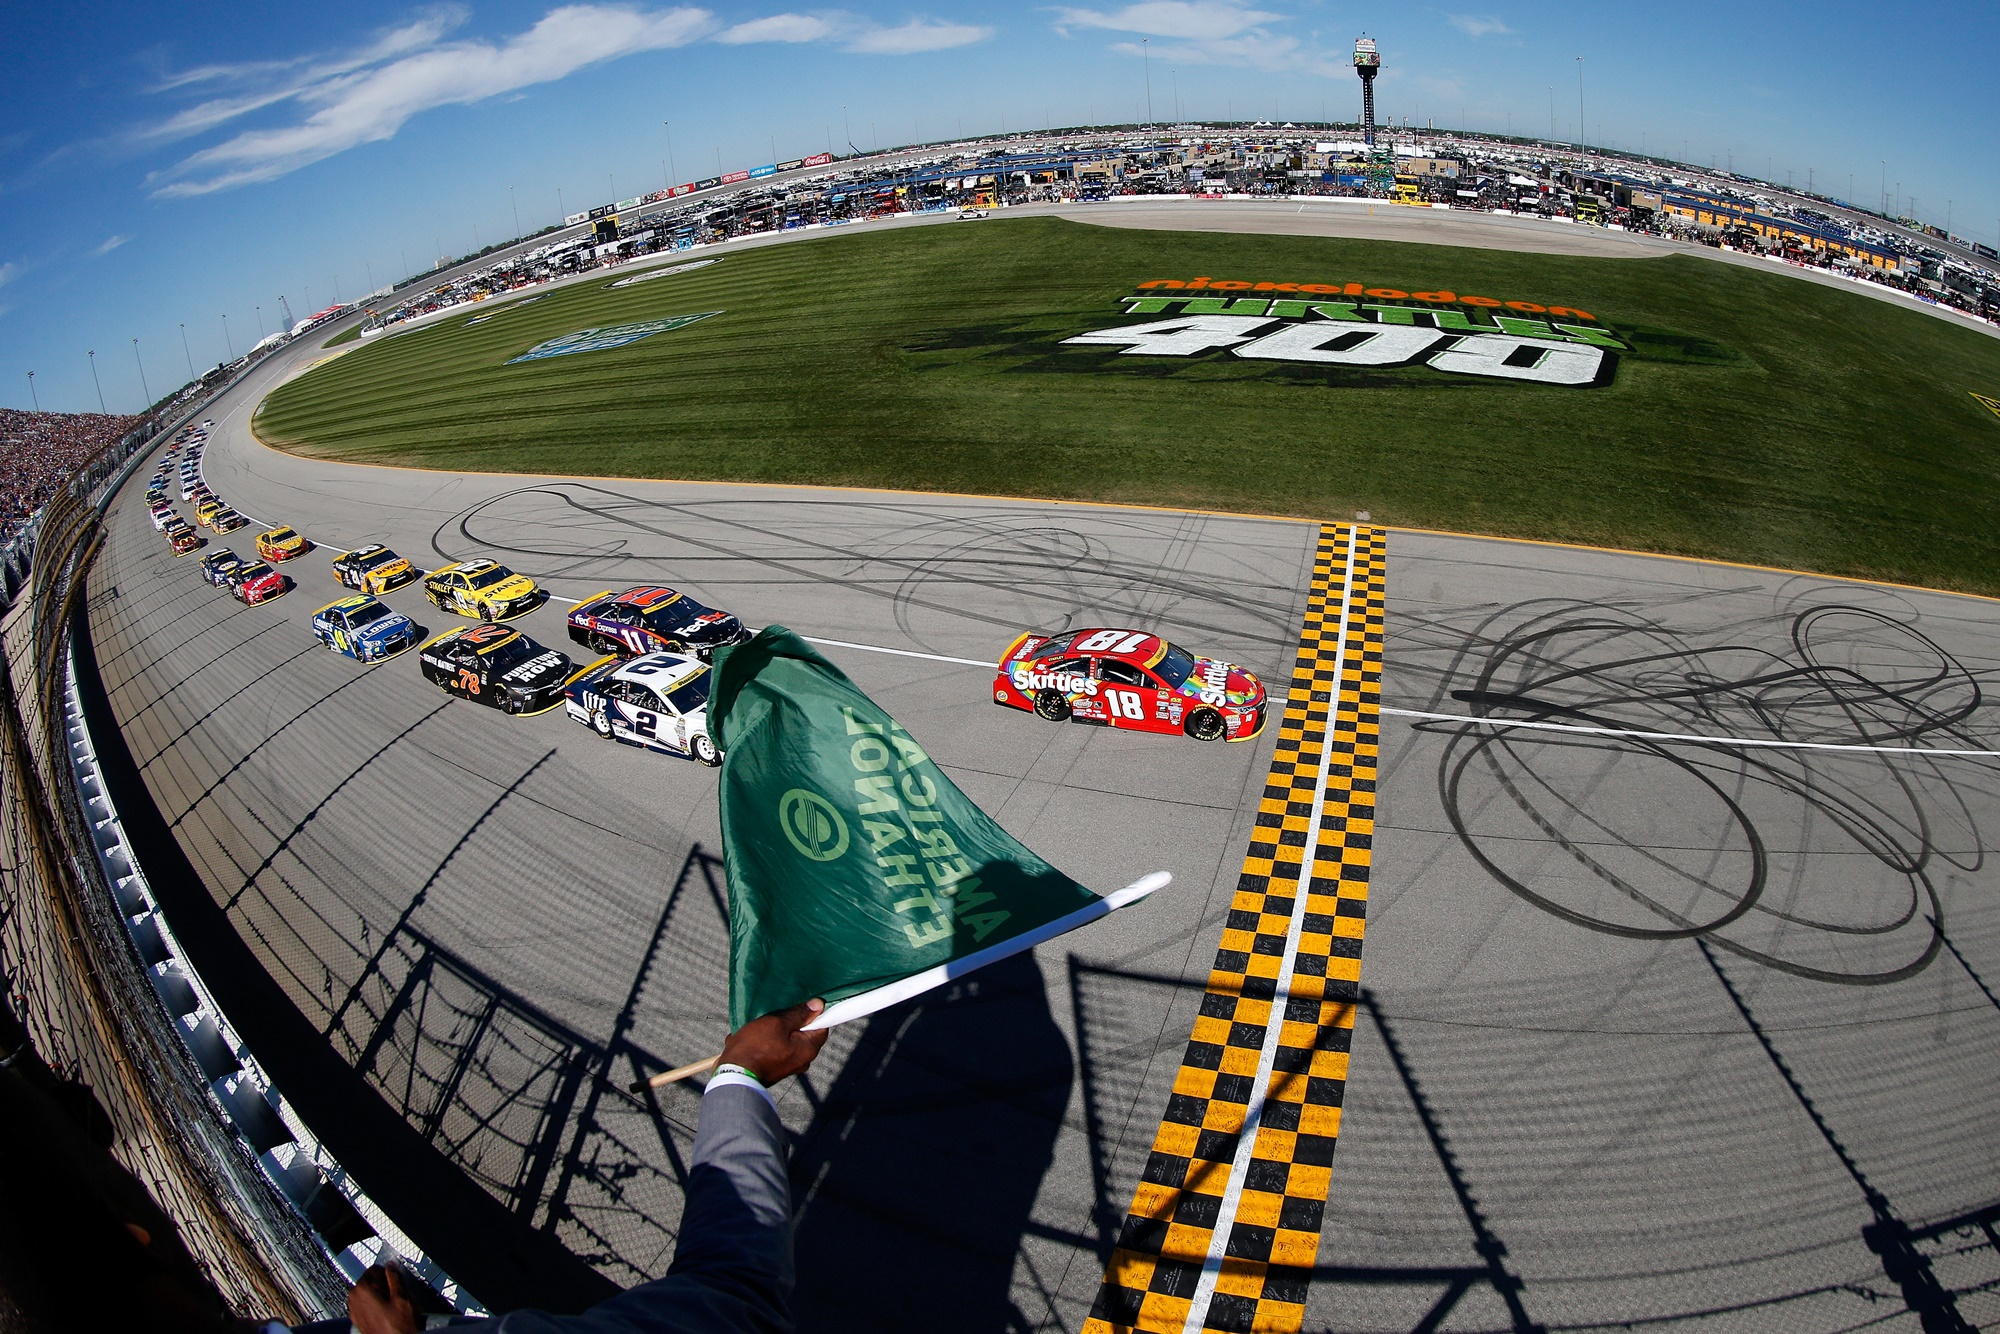 NASCAR Sprint Cup Series Teenage Mutant Ninja Turtles 400